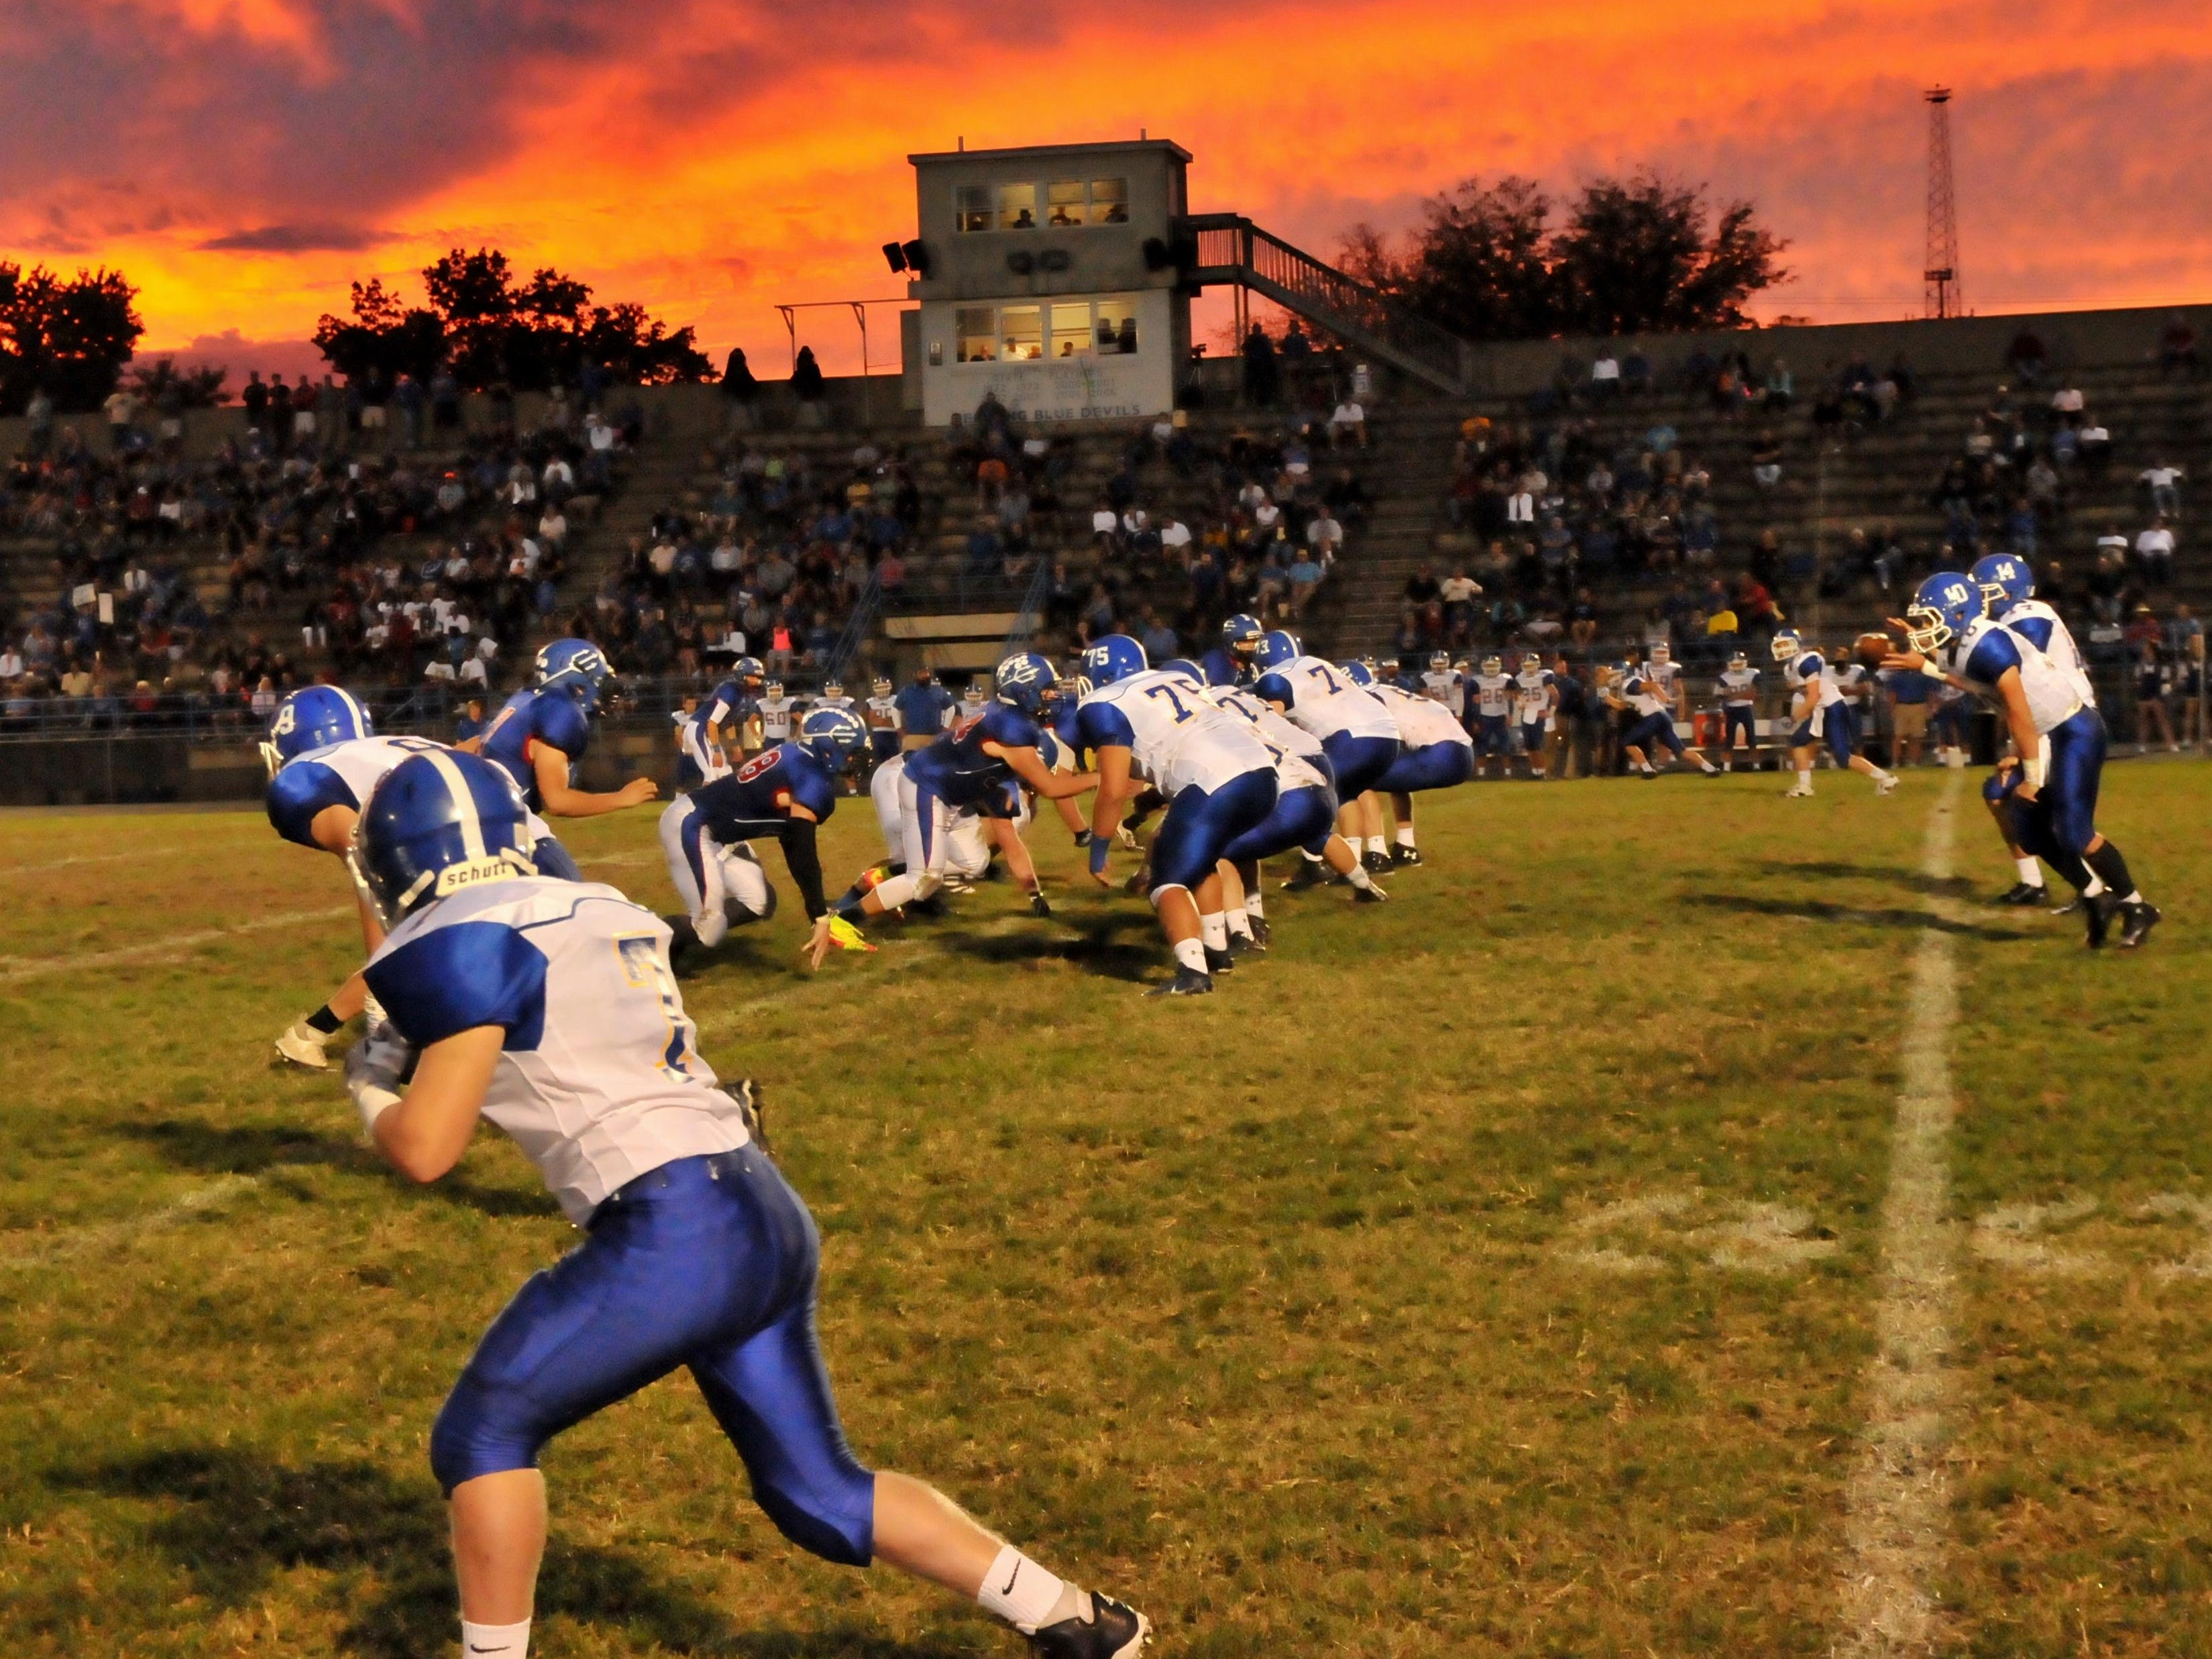 The sunset provides a perfect backdrop as Reading plays host to Madeira.